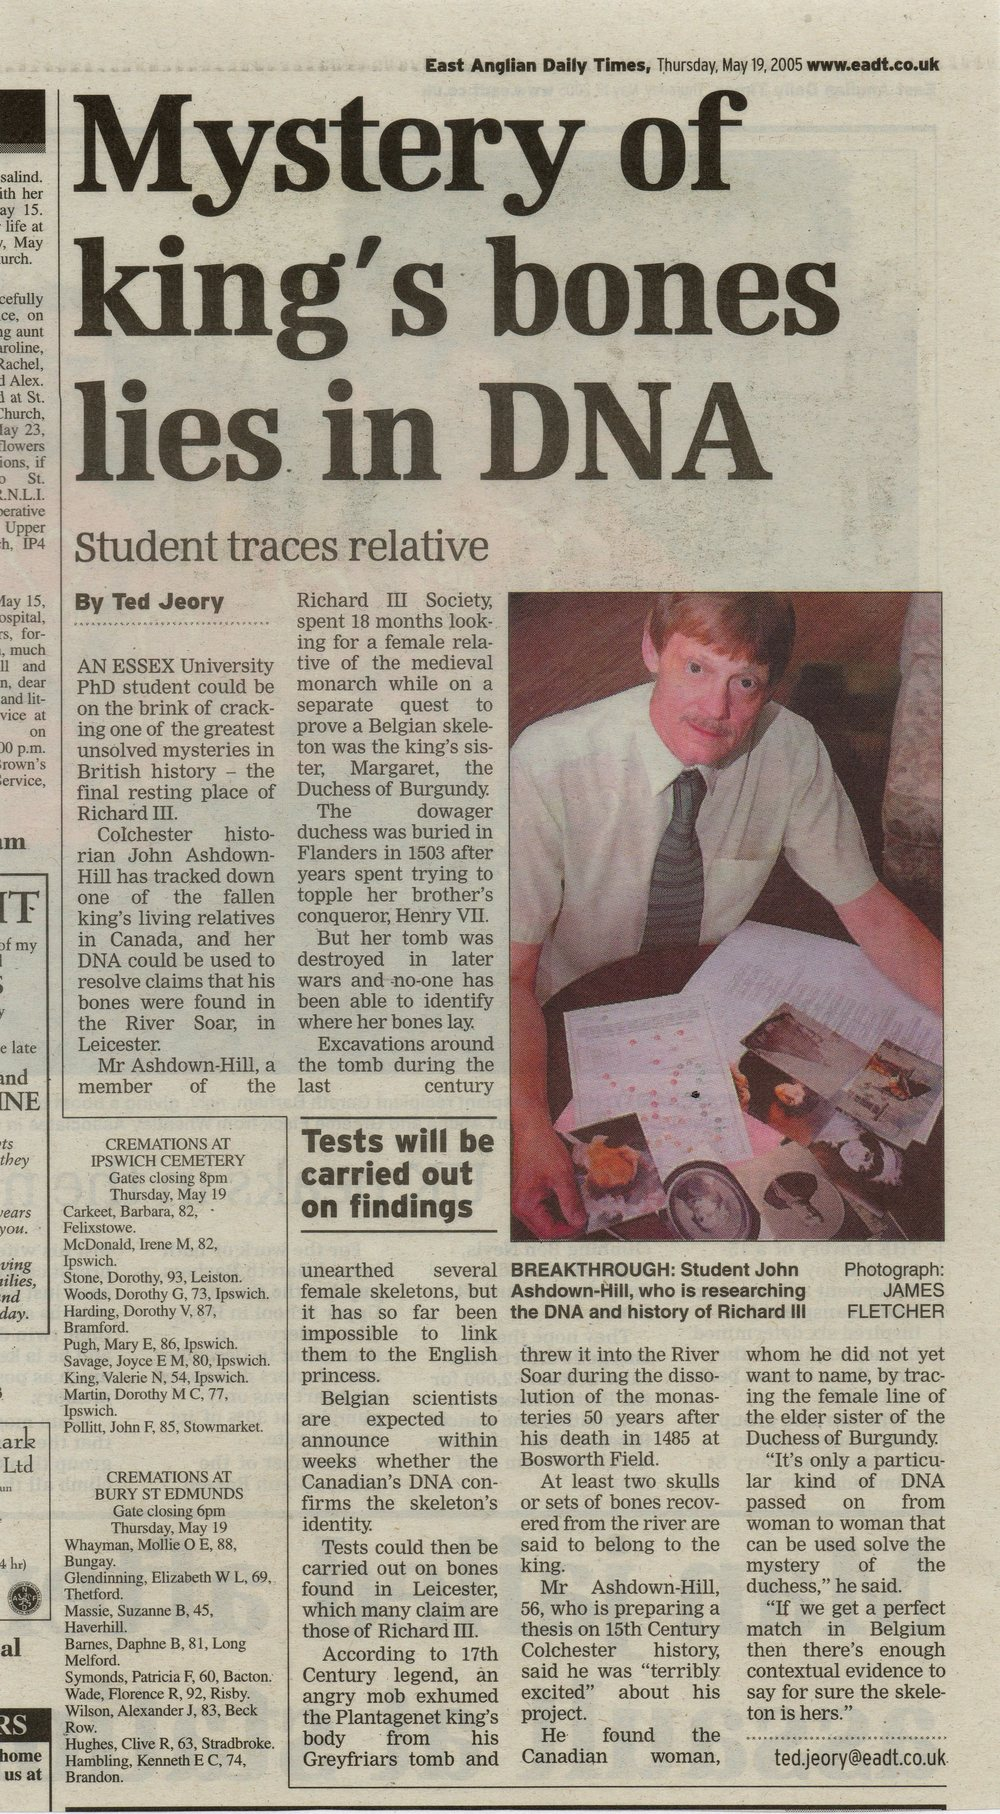 East Anglian Daily Times 11 May 2005.jpg